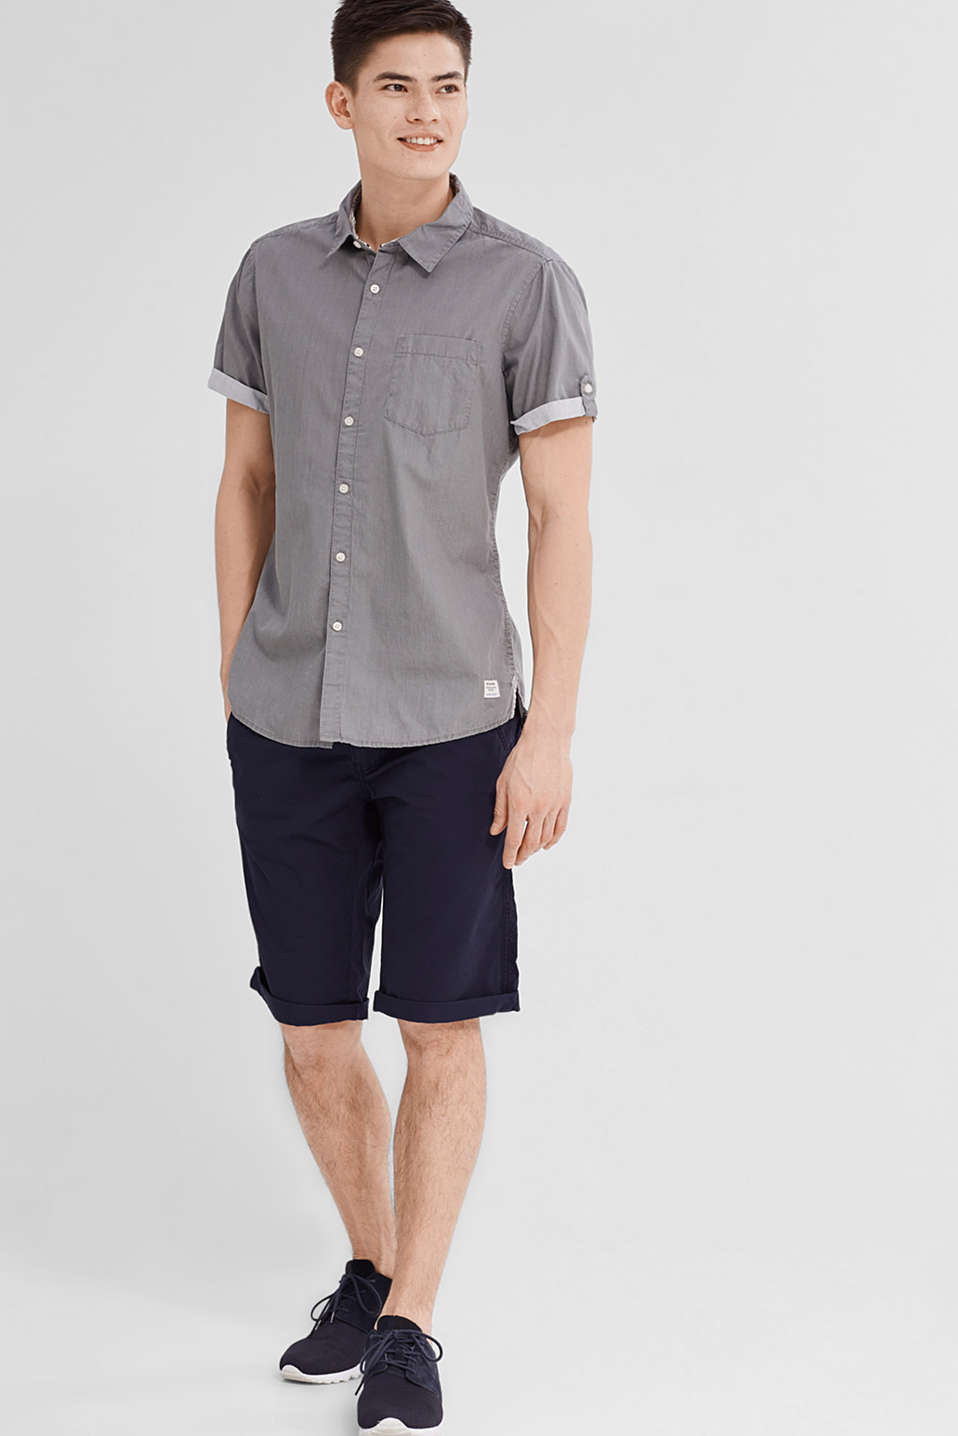 edc - Short sleeve shirt in 100% cotton